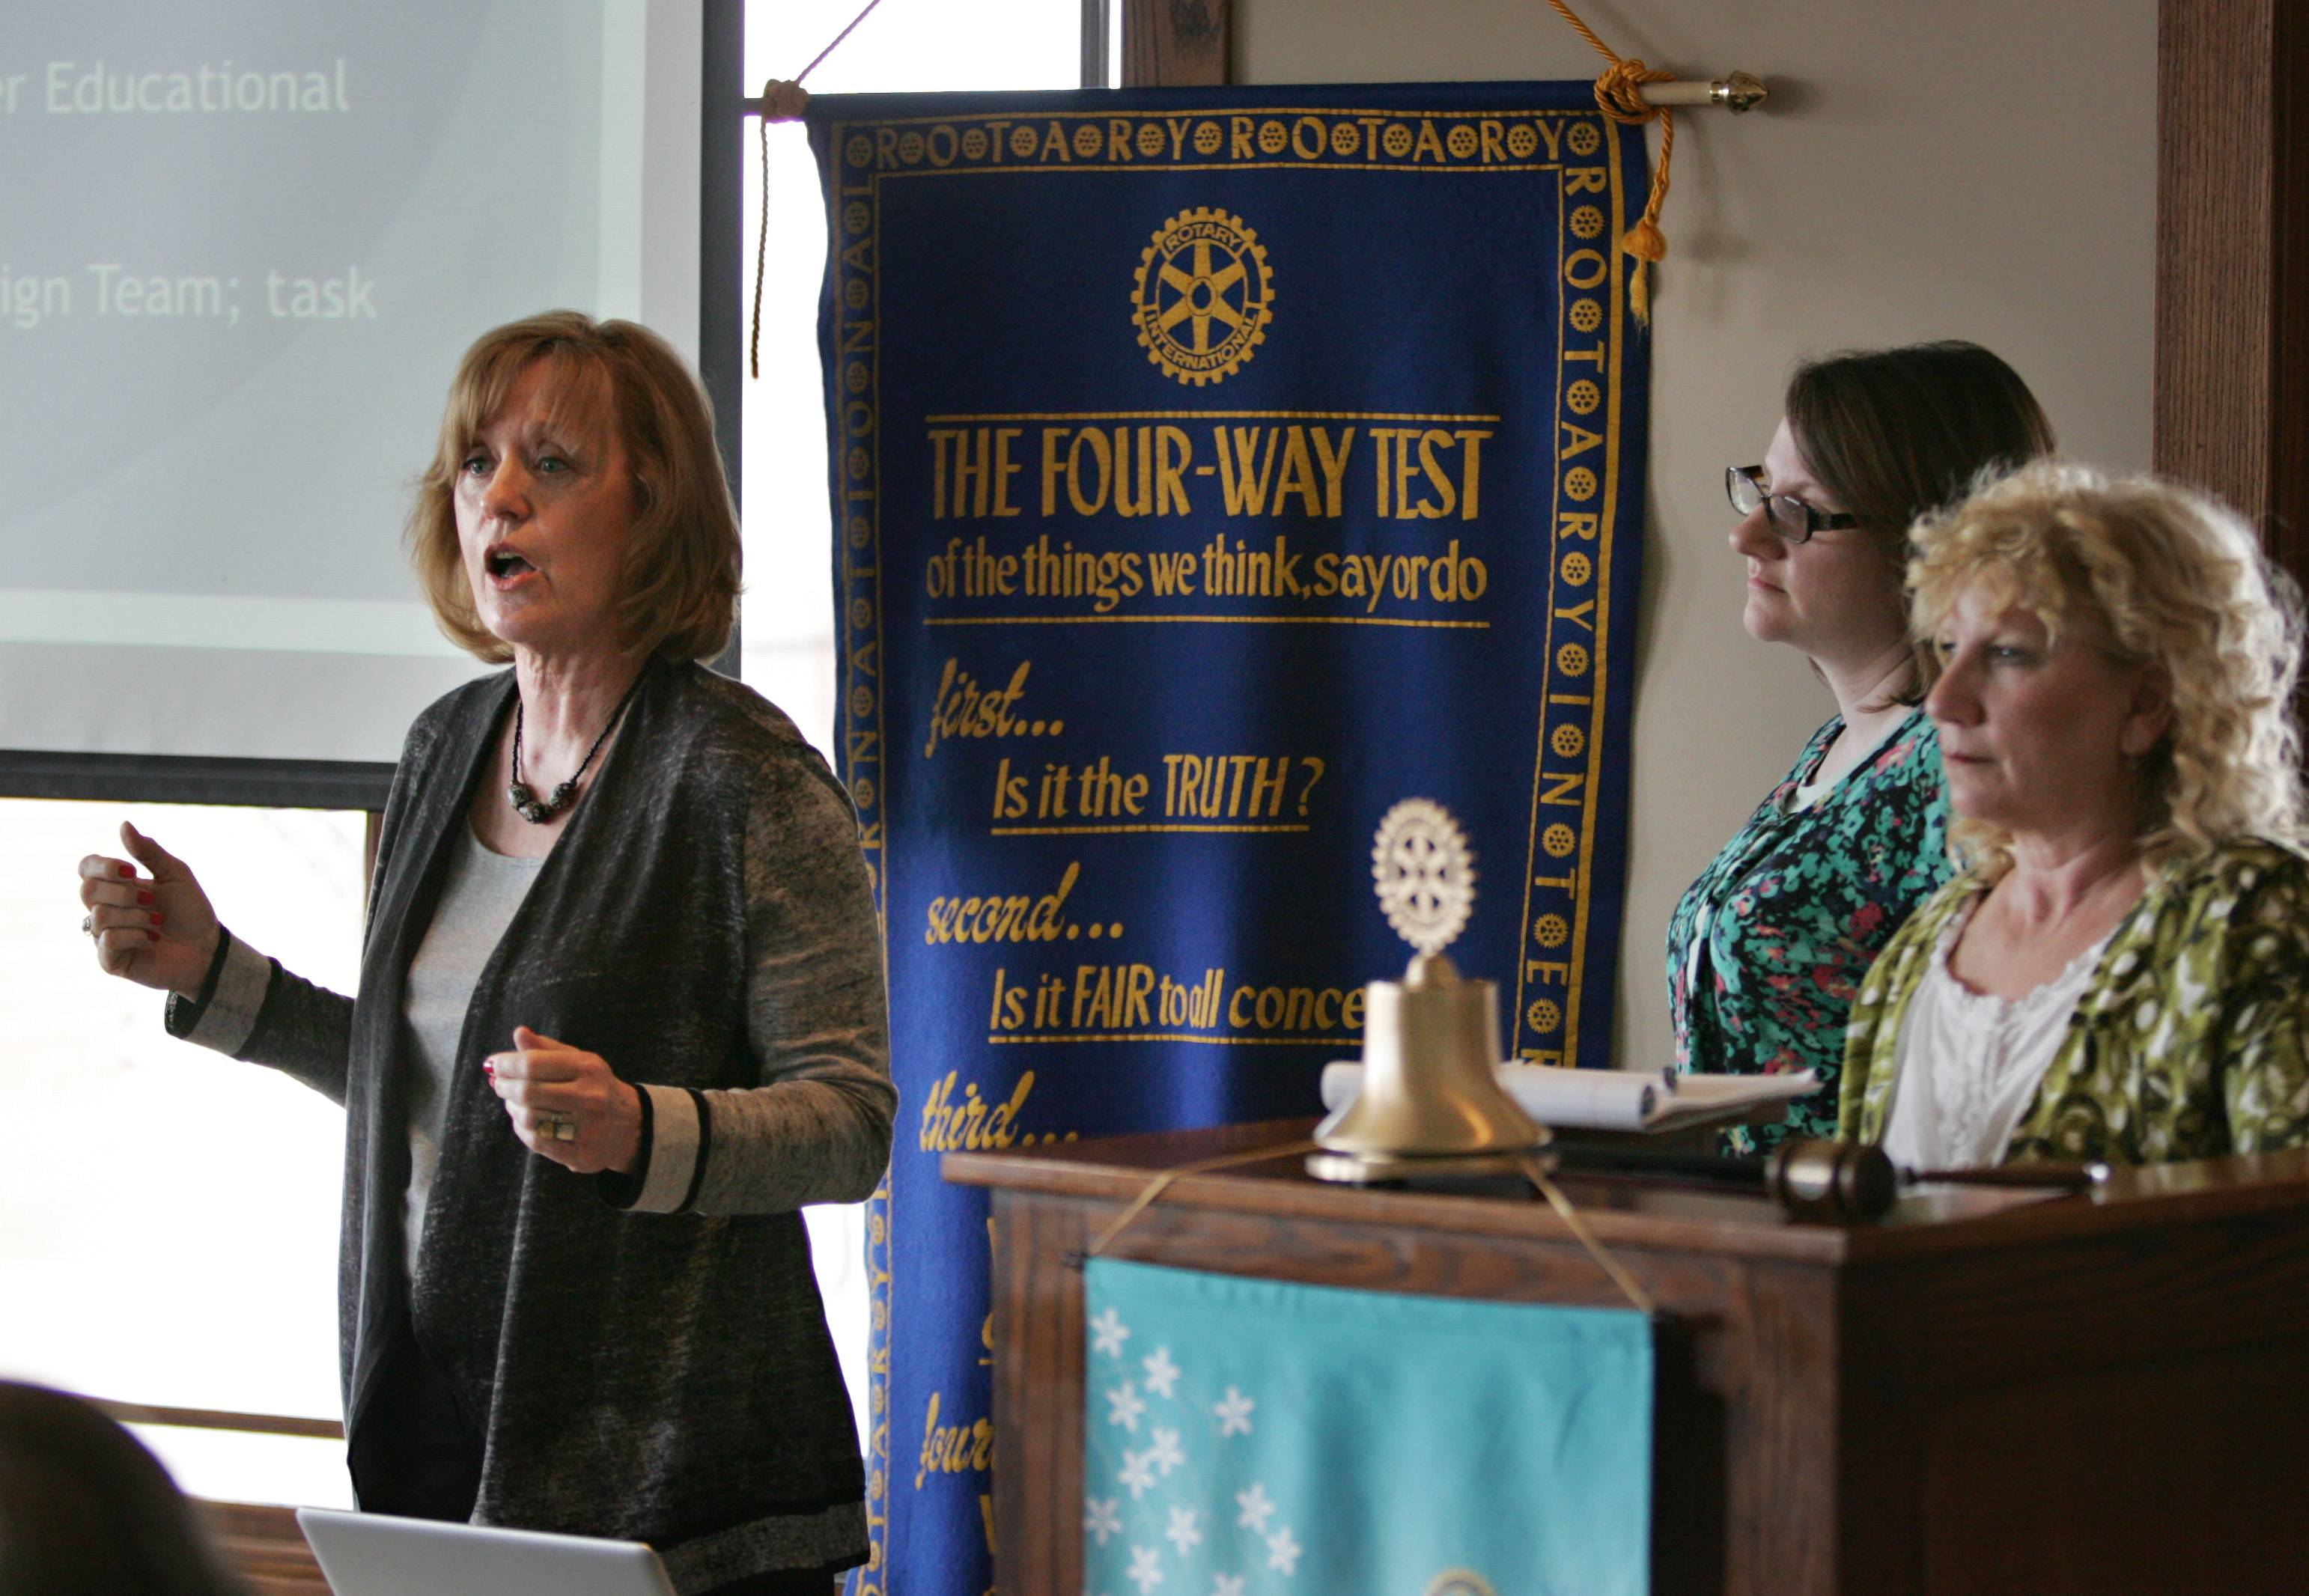 Karen Schock, president of the Elgin Charter School Initiative, talks about the group's charter school proposal last year with members of the Elgin Noon Rotary Club. Also pictured are Kari White, center, and Krissy Palermo.